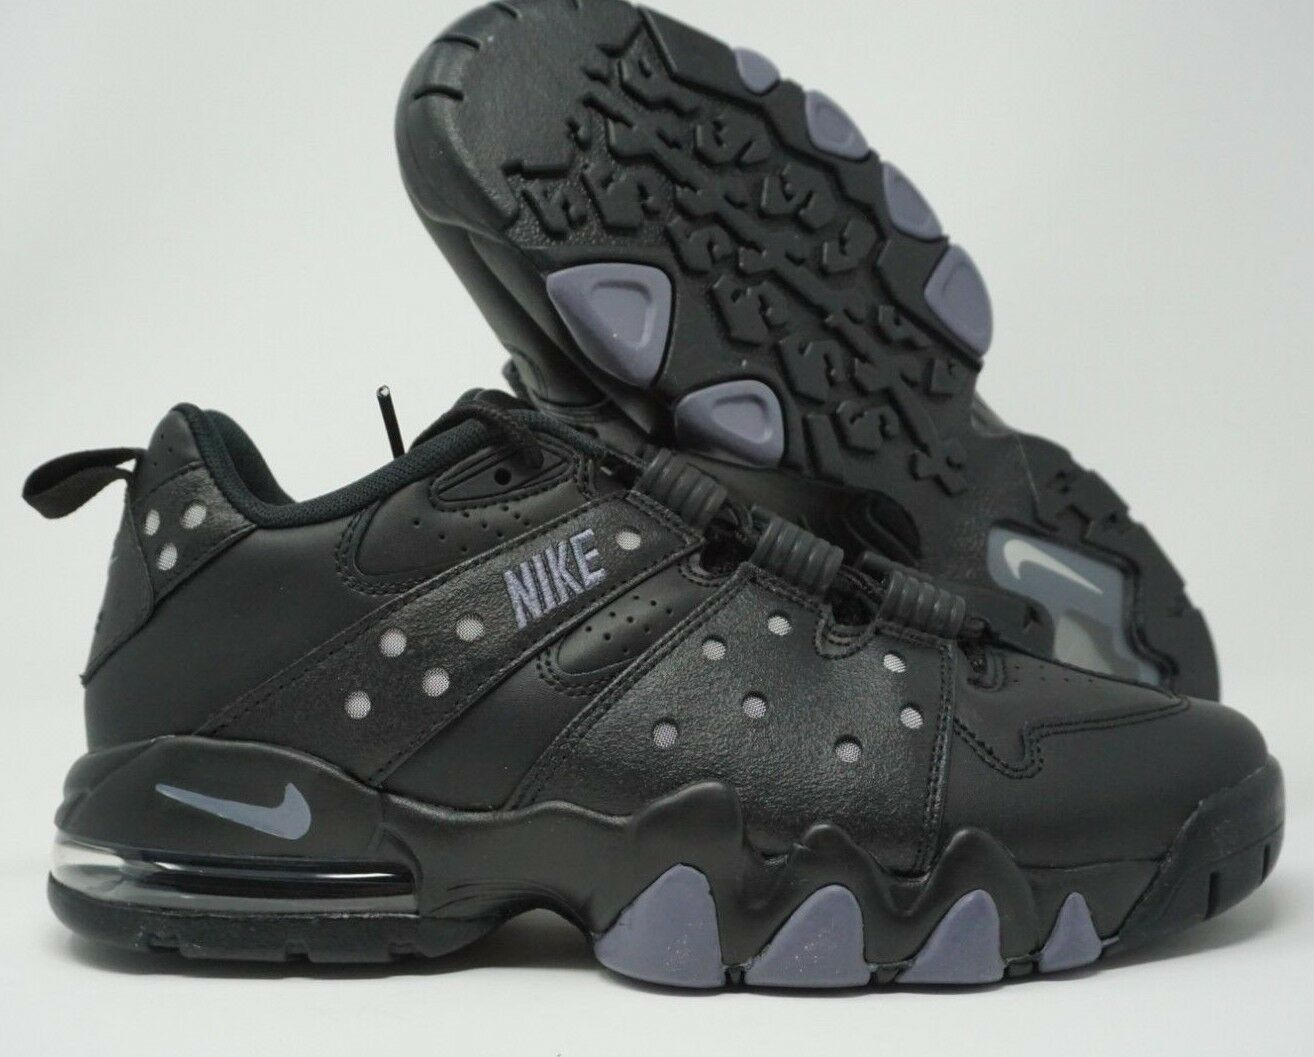 Nike Air Max 2 CB 94 Low Basketball Shoes Black Light Carbon 917752-003 Size 9.5